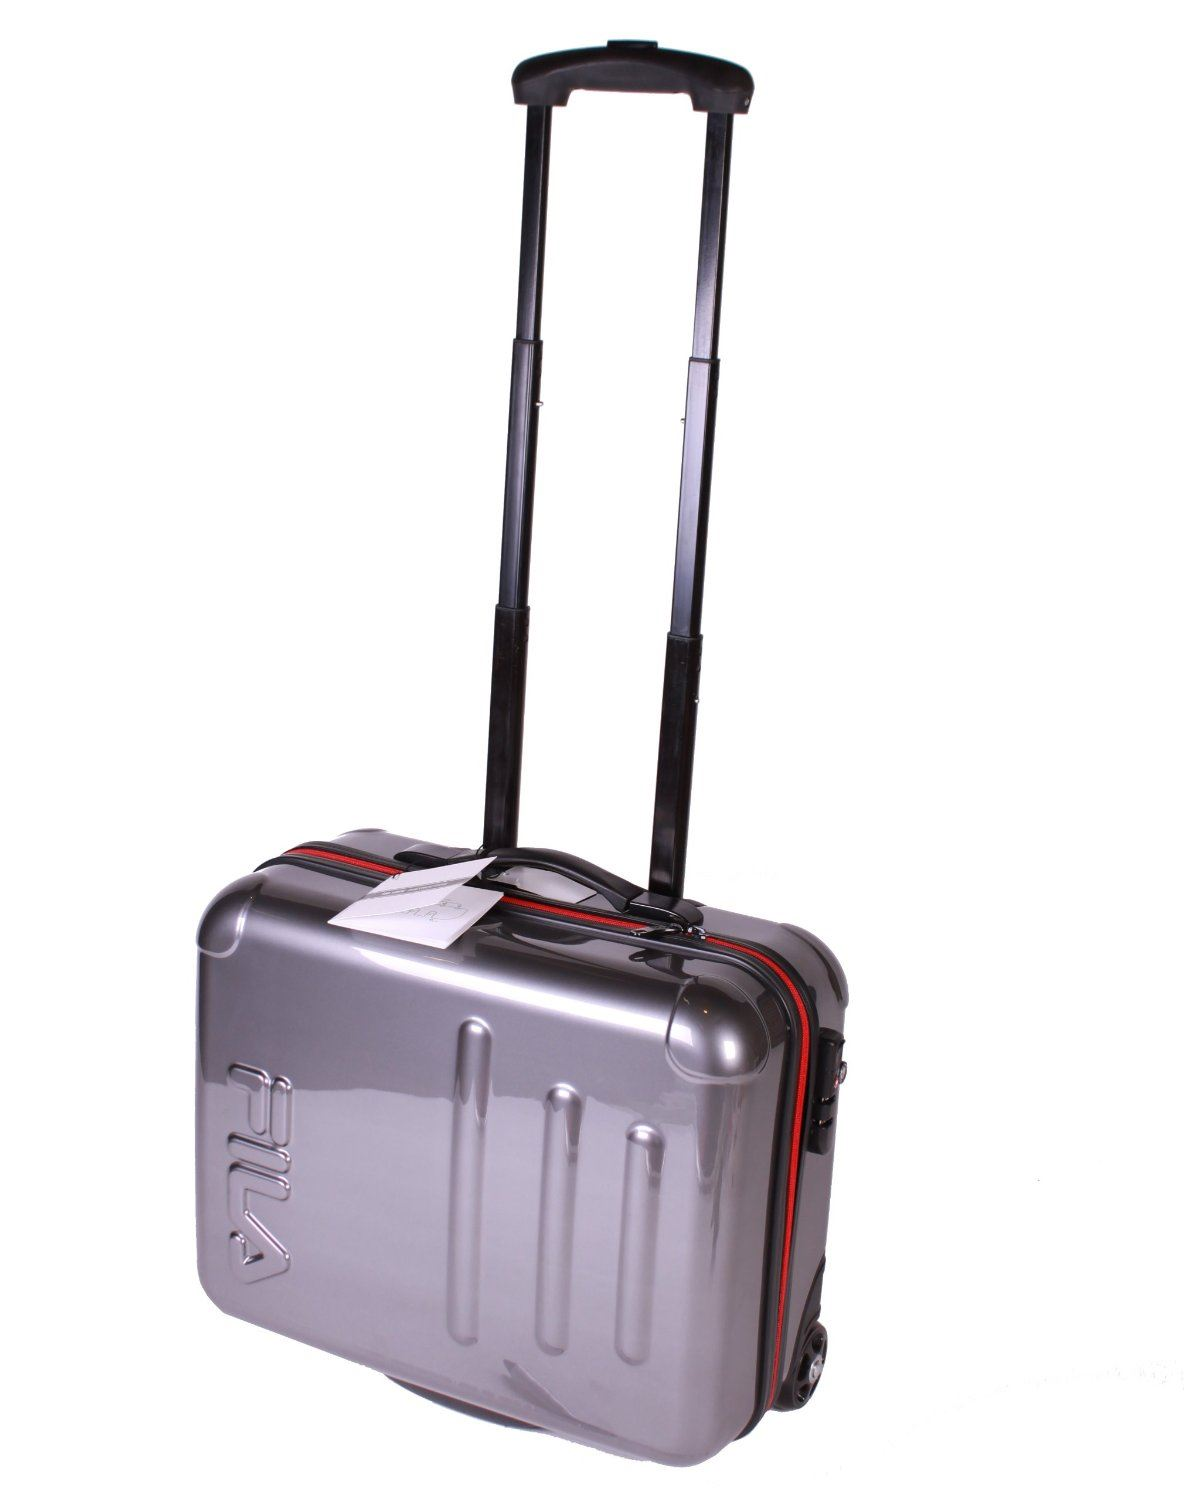 new fila hardshell business size trolley suitcase hand